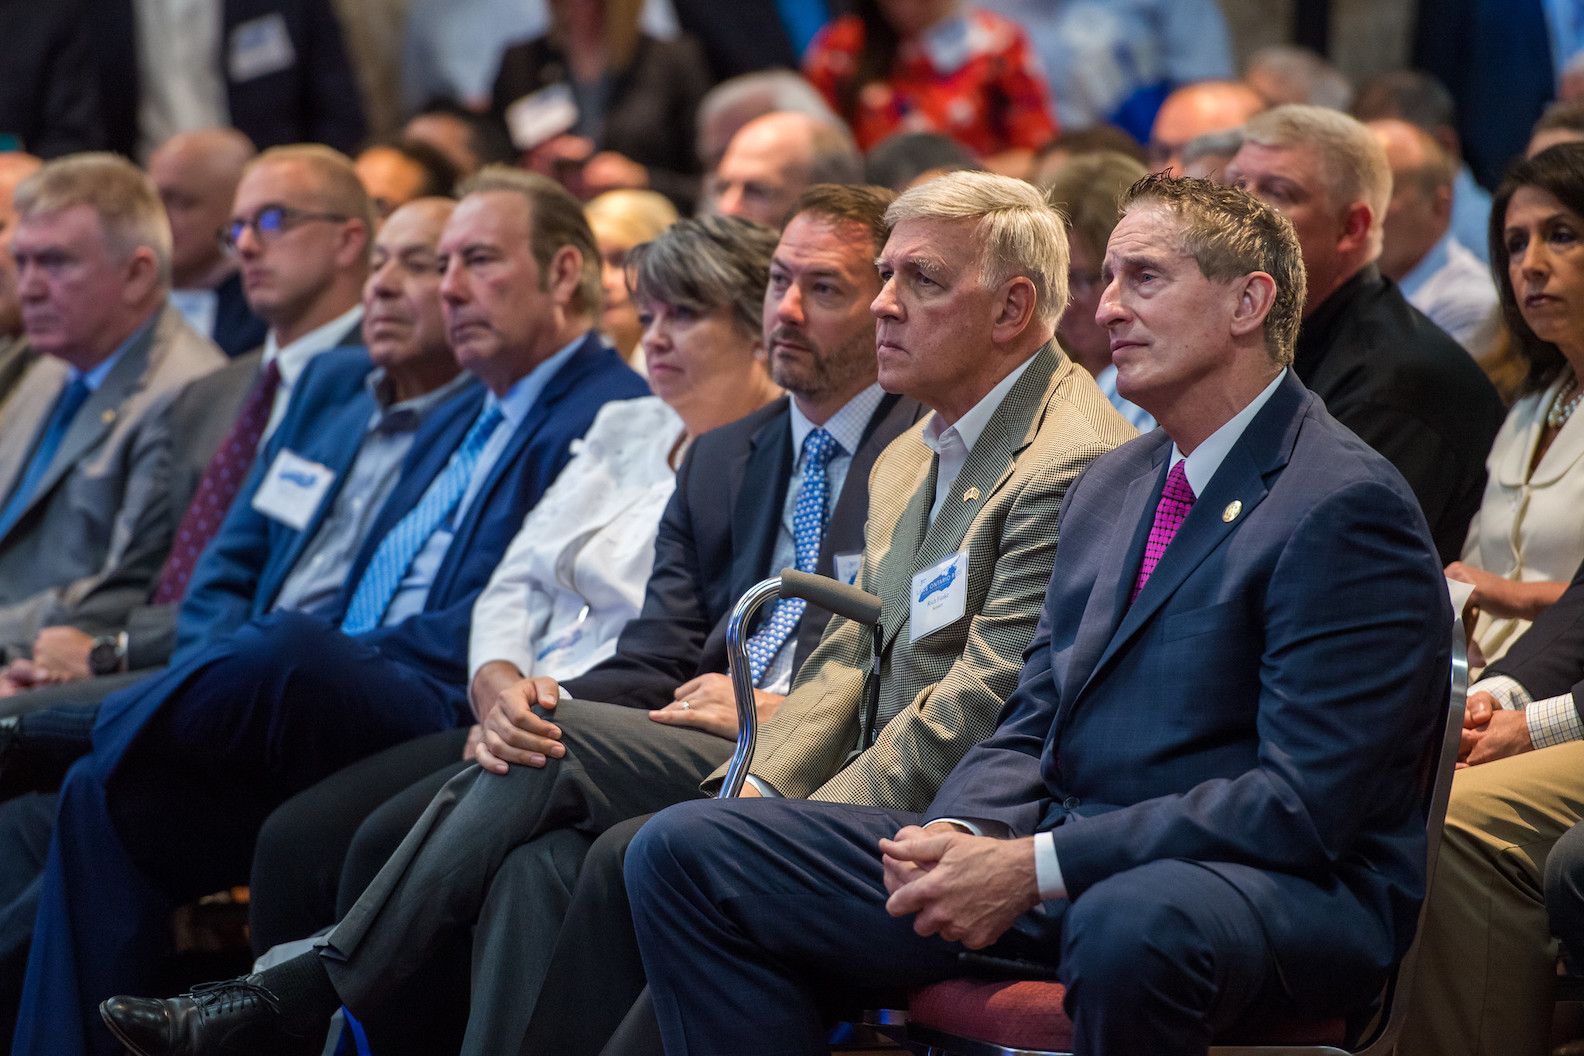 The audience listens as Gov. Andrew Cuomo holds a Lake Ontario Resiliency and Economic Development Initiative conference in Rochester.